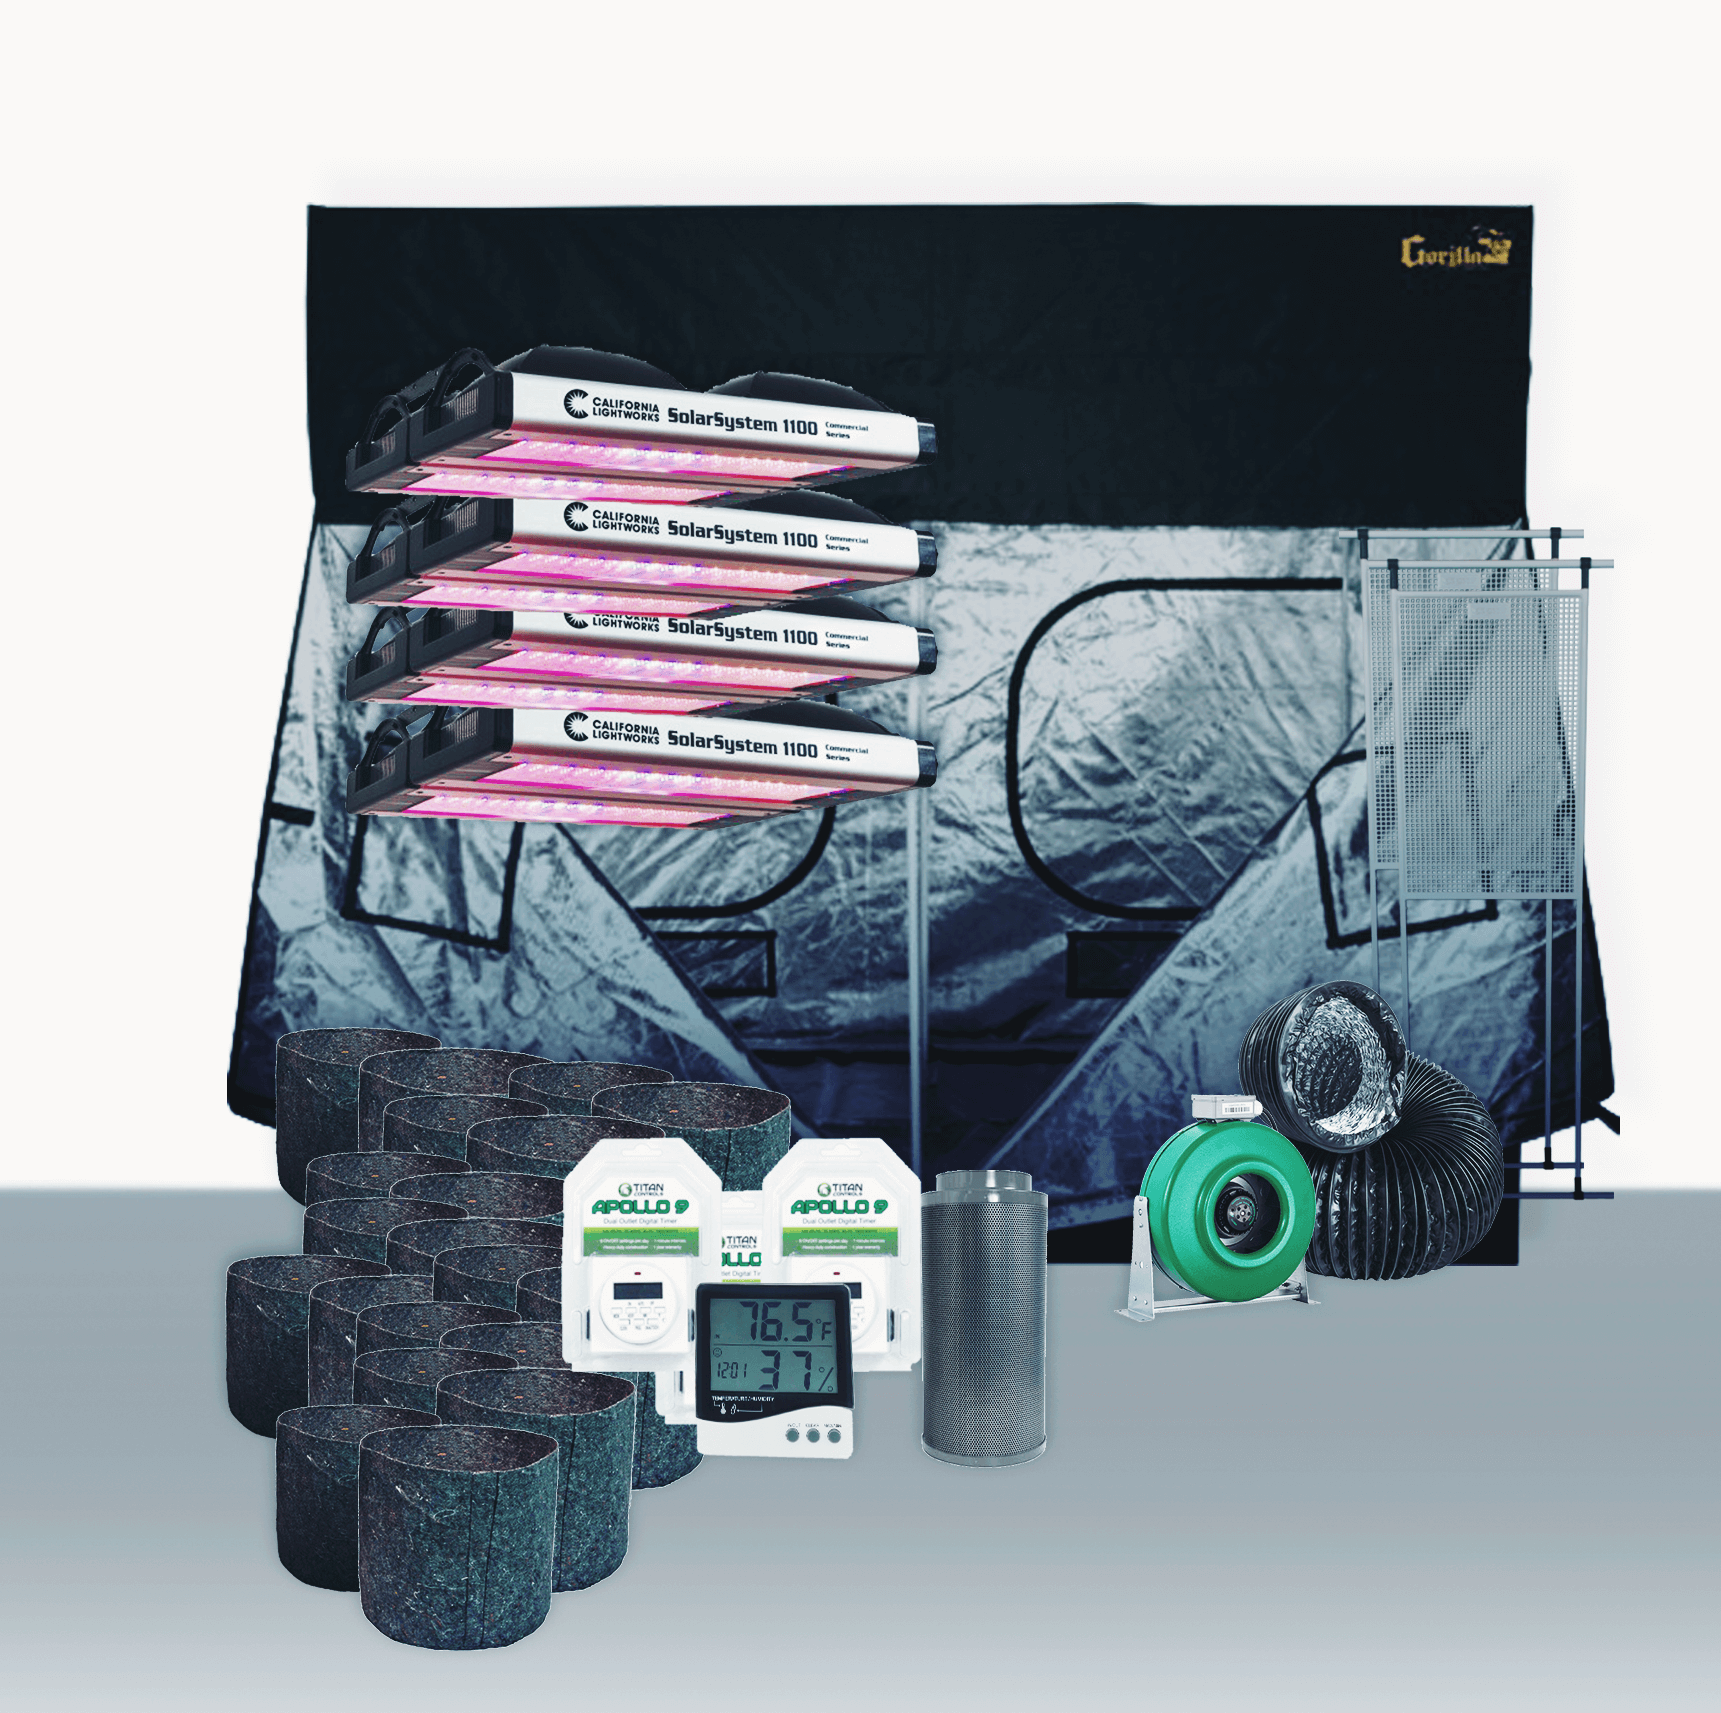 10' x 10' Grow Room 1100W CLW LED Soil Complete Grow Tent Package 10' x 10' Grow Room 1100W CLW LED Soil Complete Grow Tent Package This complete grow room tent package includes everything that you need to get started with discretely growing at home. Experienced growers designed every aspect of this tent package. They chose the parts of this package to create the best grow experience at an affordable price. Included in this Grow Tent Kit: Gorilla Grow Tent 10' x 10' Growers House Carbon Filter 8  x 24  750 CFM Active Air 8 inch In-Line Fan 720 CFM 8 inch x 25' Black Lightproof Ducting w/Clamps Silver Flex Duct Tape -- 120 Yards 2 x Gorilla Gear Board 2 x Hurricane Wall Mount Fan Supreme Series - 16 in 4 x California Light Works Solar System 1100 LED Grow Light 6 x Grow Crew 1/8 inch Ratchet Light Hanger (Pair) 3 x Titan Controls Apollo 9 -- Digital Dual Timer Titan Controls - Spartan Series - 4 Light Controller 240 Volt Grower's Edge Large Display Thermometer & Hygrometer 64 x Growers House Essentials Round Fabric Charcoal Pot - 3 Gallon 64 x Gro Pro Heavy Duty Black Saucer - 12 in Grower's Edge Soft Mesh Trellis Netting 5 ft x 60 ft w/ 6 in Squares General Hydroponics pH Control Kit Gorilla Grow Tent 10' x 10' Gorilla Grow Tents are professionally designed grow tents that are ideal for experts and perfect for beginners. The expert configuration positions ducting ports where they should be. Large EZ View windows offer easy grow snapshots without compromising your environment. The doorways offer 360 degree convenient access. The larger layouts provide frustration free maneuvering. Thick material and large 10  double cinching ducting ports make maintaining an ideal growing space a snap. Grow easy on yourself. Grow Gorilla.GORILLA GROW TENTS are made with 1680D threaded, reflective fabric, which is up to 3 - 9x denser than any other grow tent. This means that they are more light proof, more durable, quieter, stronger, safer, and easily create an undetectable growing en